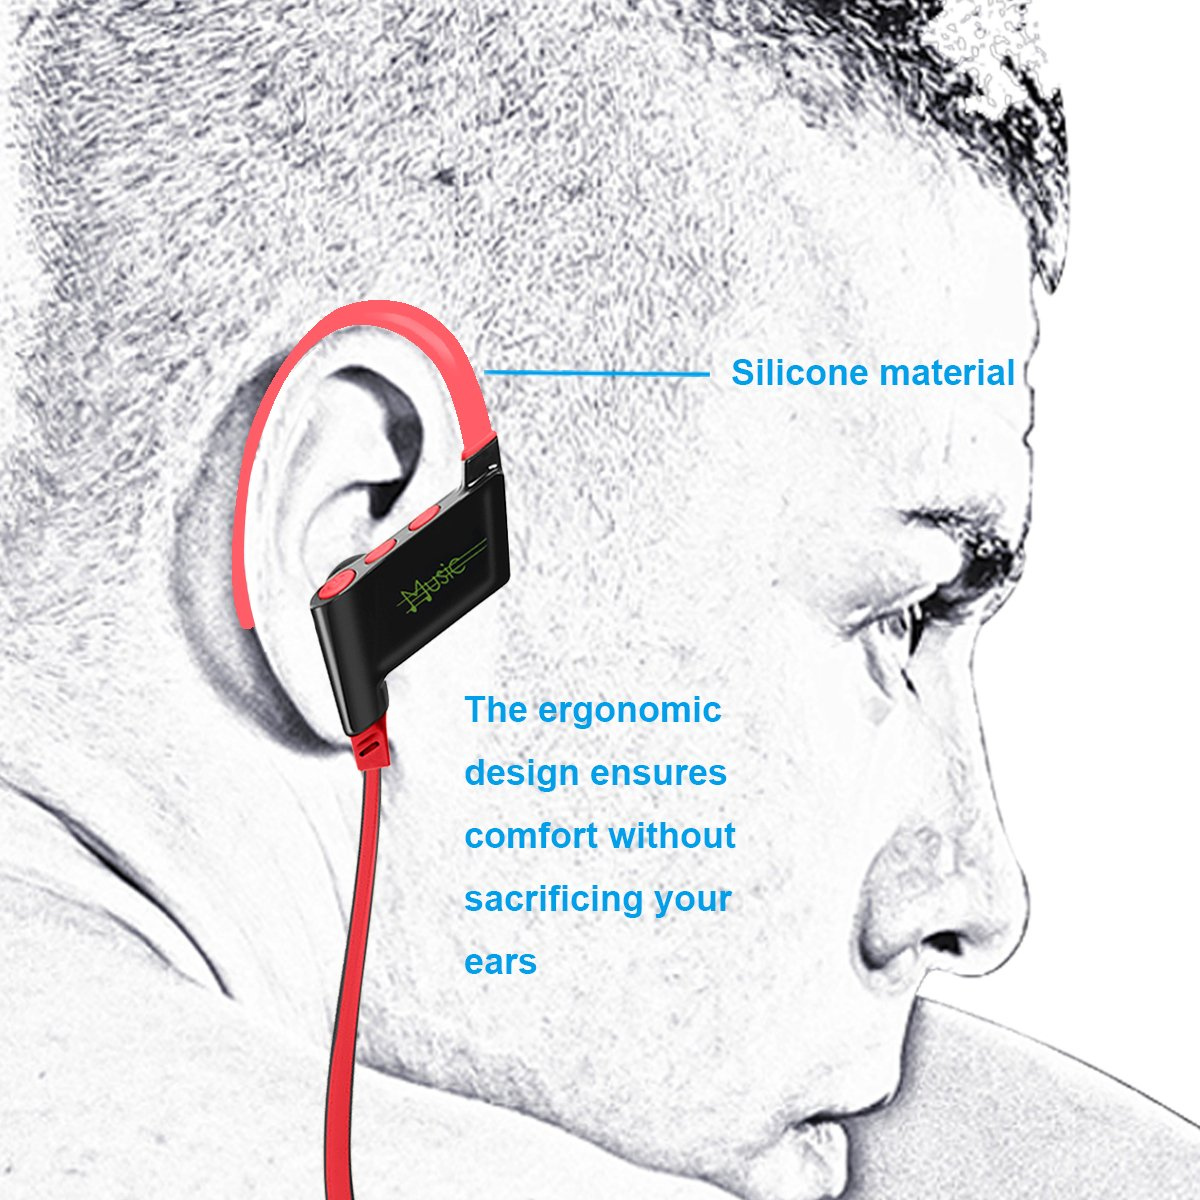 KELODO S808 Behind Neck Bluetooth Headphones, Rechargeable In-ear Earpiece Wireless Headset with Noise Cancelling for iPad iPod iPhone 5s 6 7 and Other Android Mobile or Apple Devices - Red